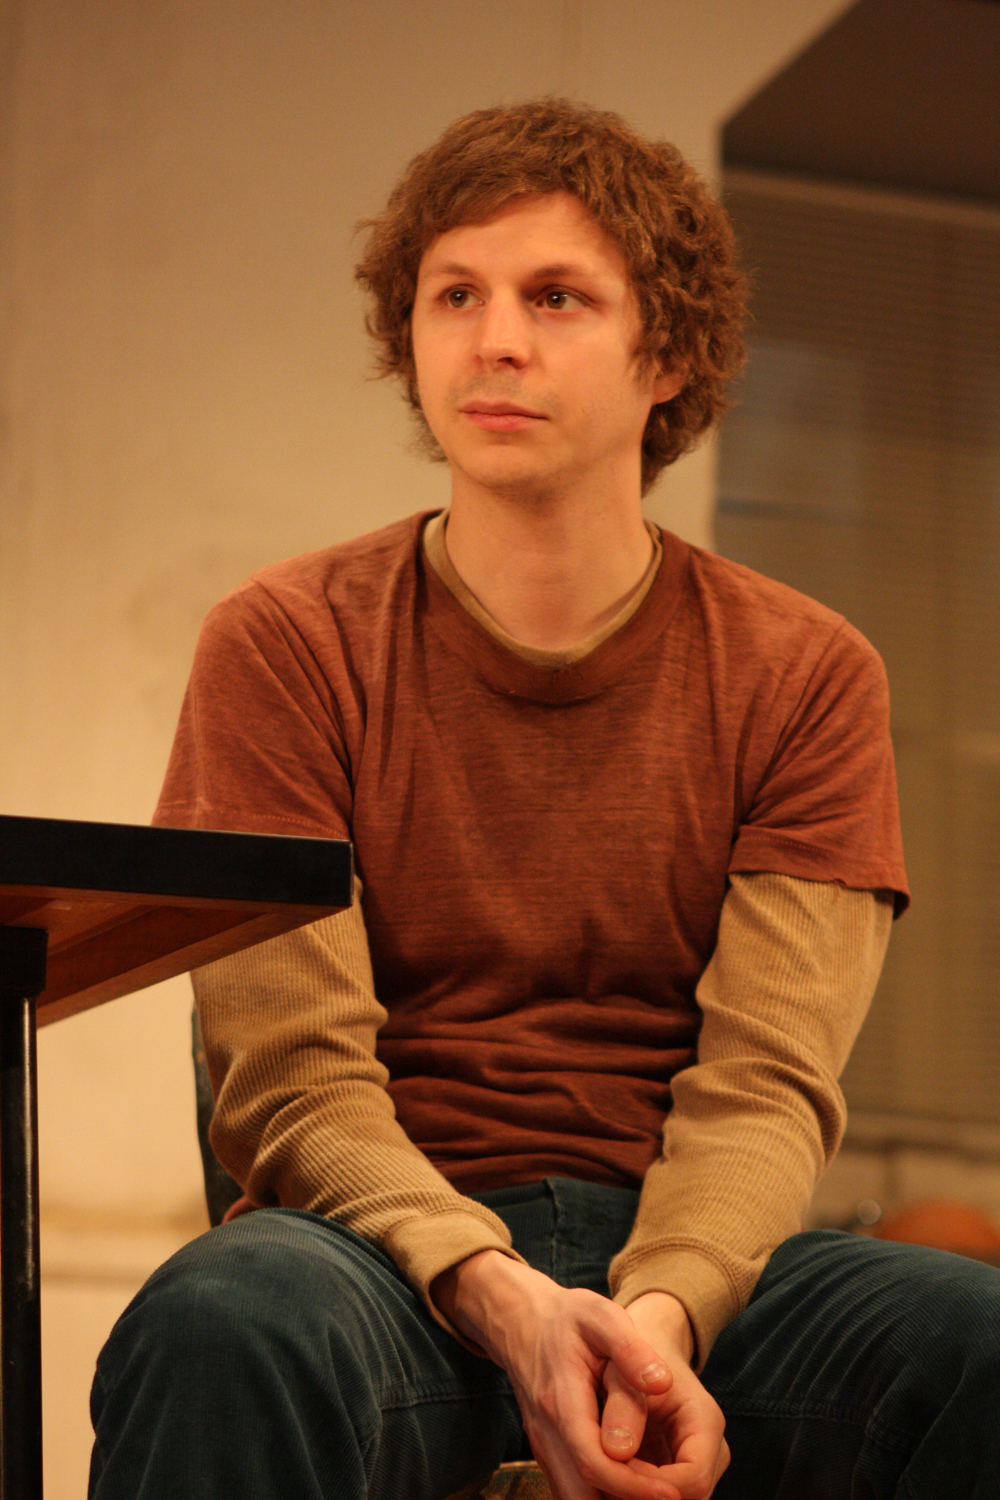 michael cera - true thatmichael cera 2016, michael cera twin peaks, michael cera witcher 3, michael cera twitter, michael cera nadine, michael cera movies, michael cera tumblr, michael cera bumpy road, michael cera band, michael cera - true that, michael cera best movies, michael cera vk, michael cera between two ferns, michael cera insta, michael cera filmography, michael cera reddit, michael cera gif, michael cera music, michael cera imdb, michael cera album